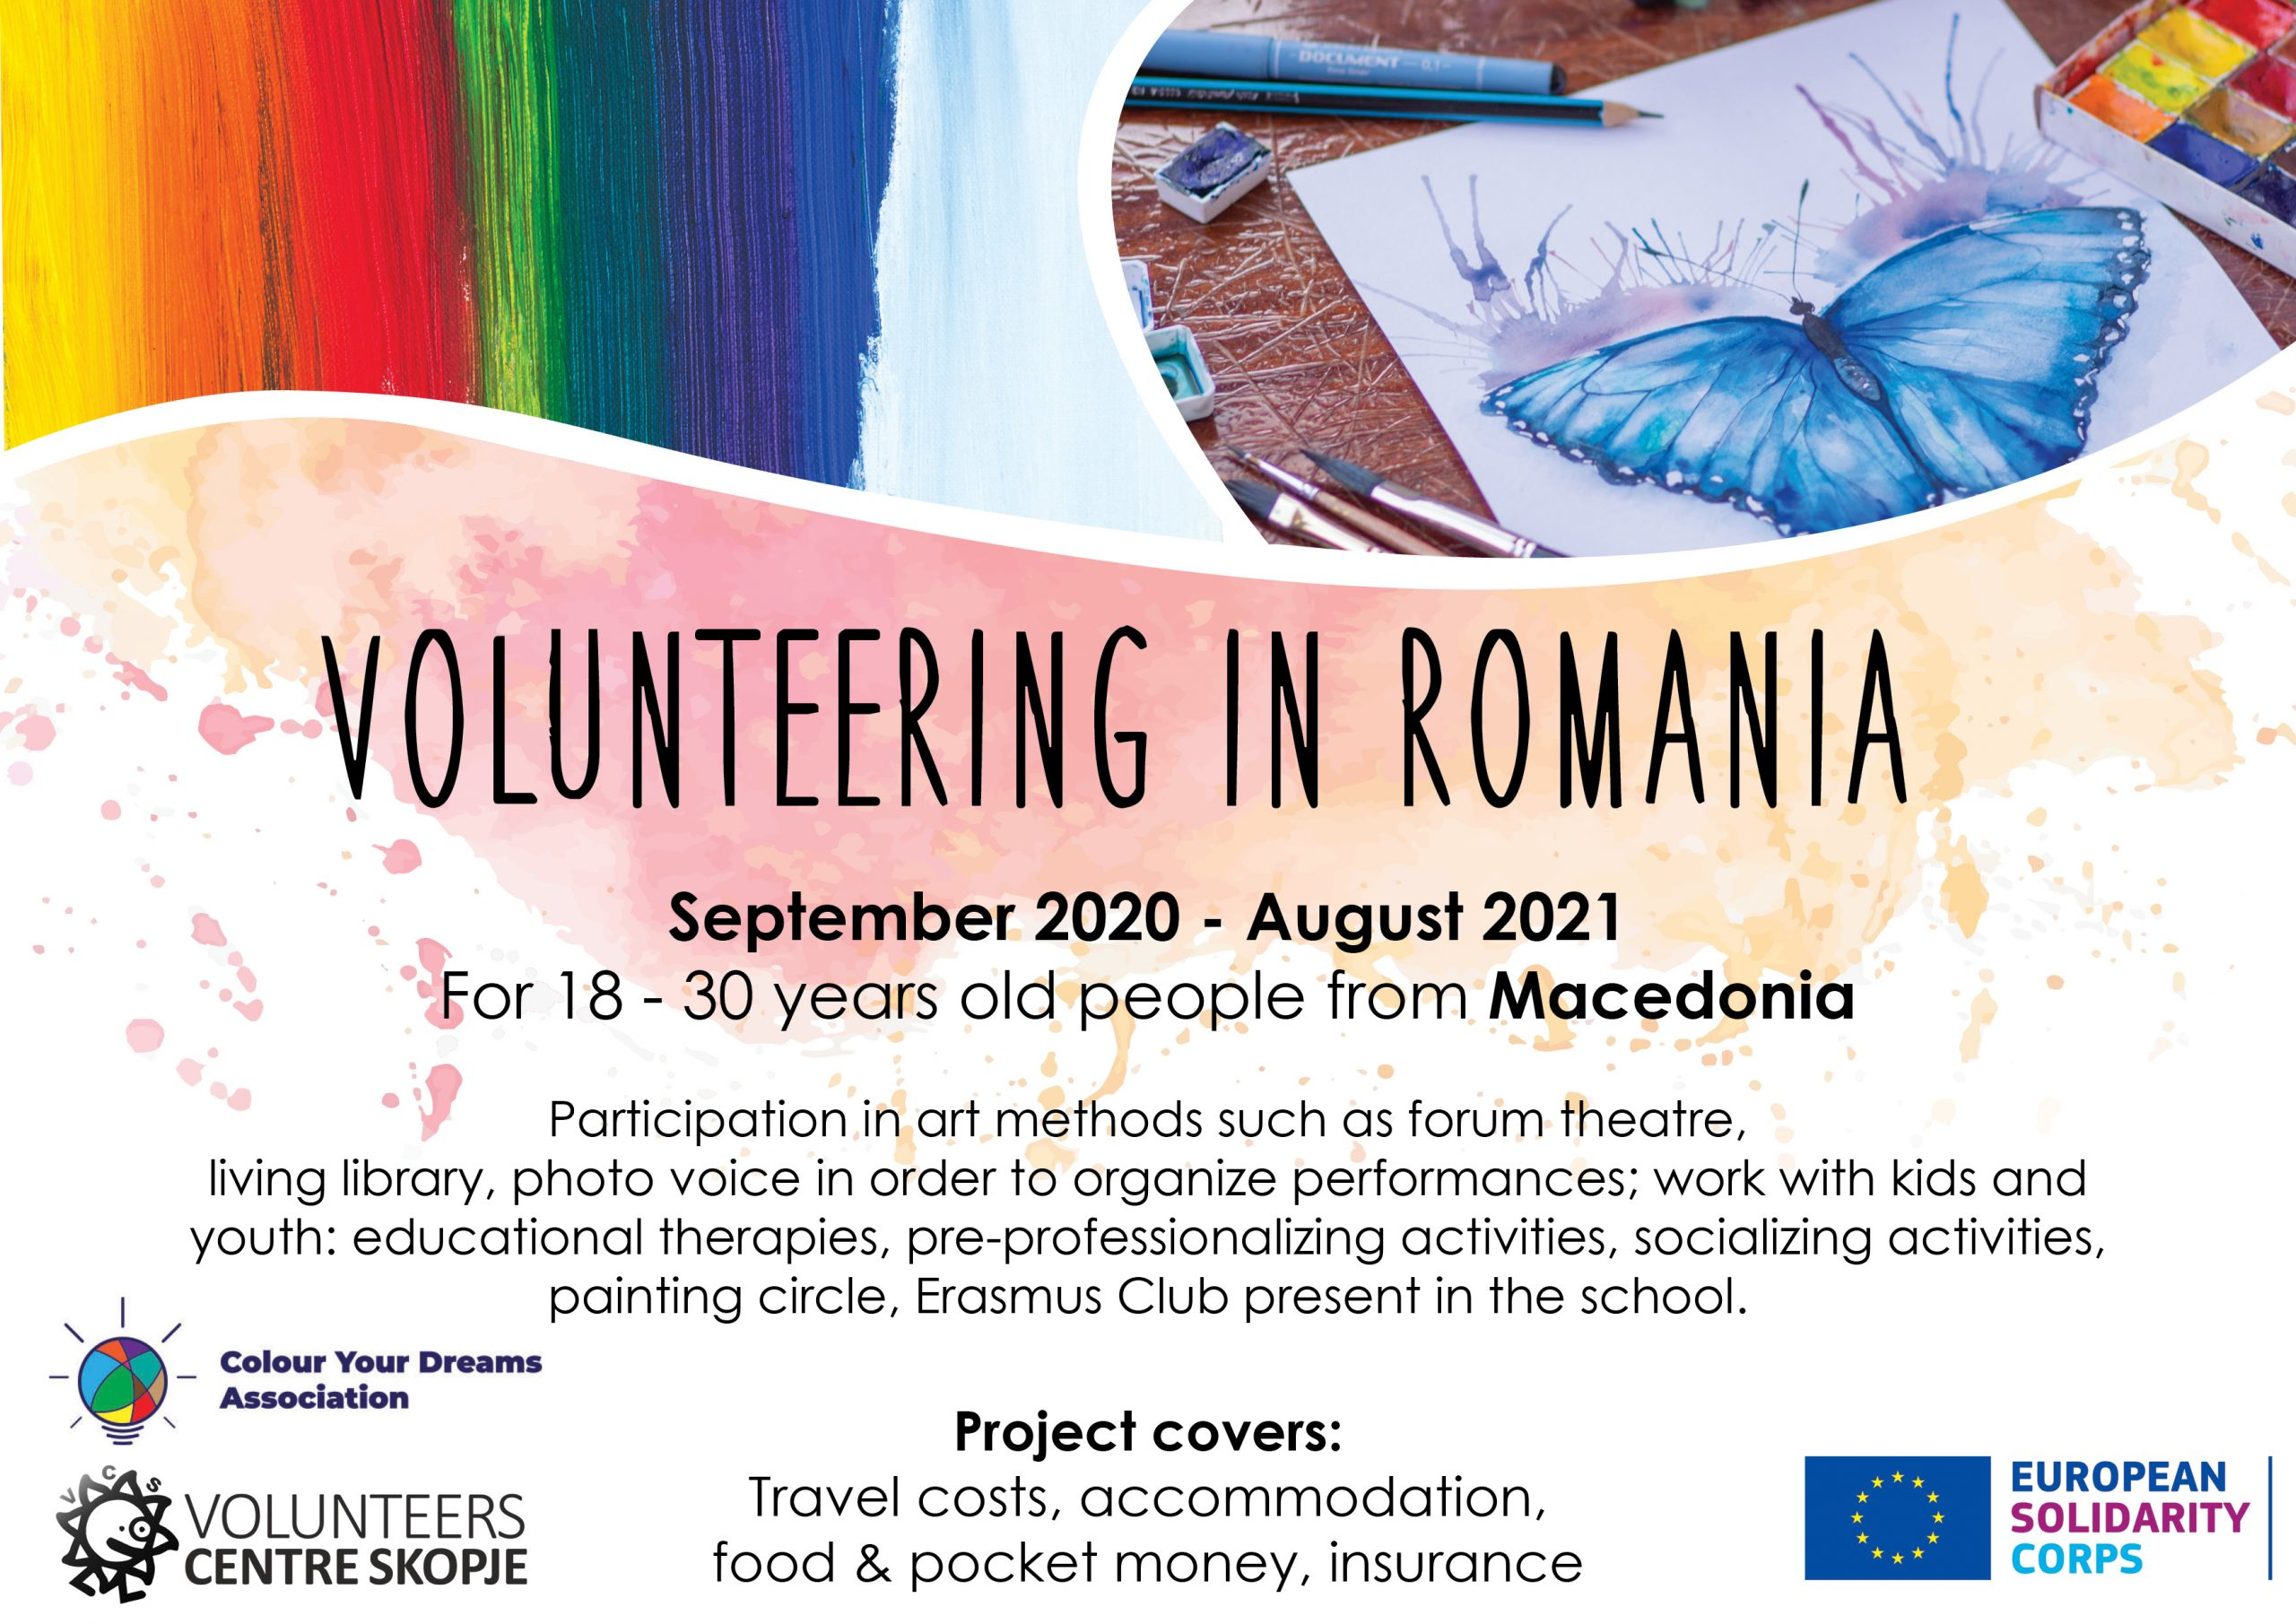 Call for volunteers in Romania!